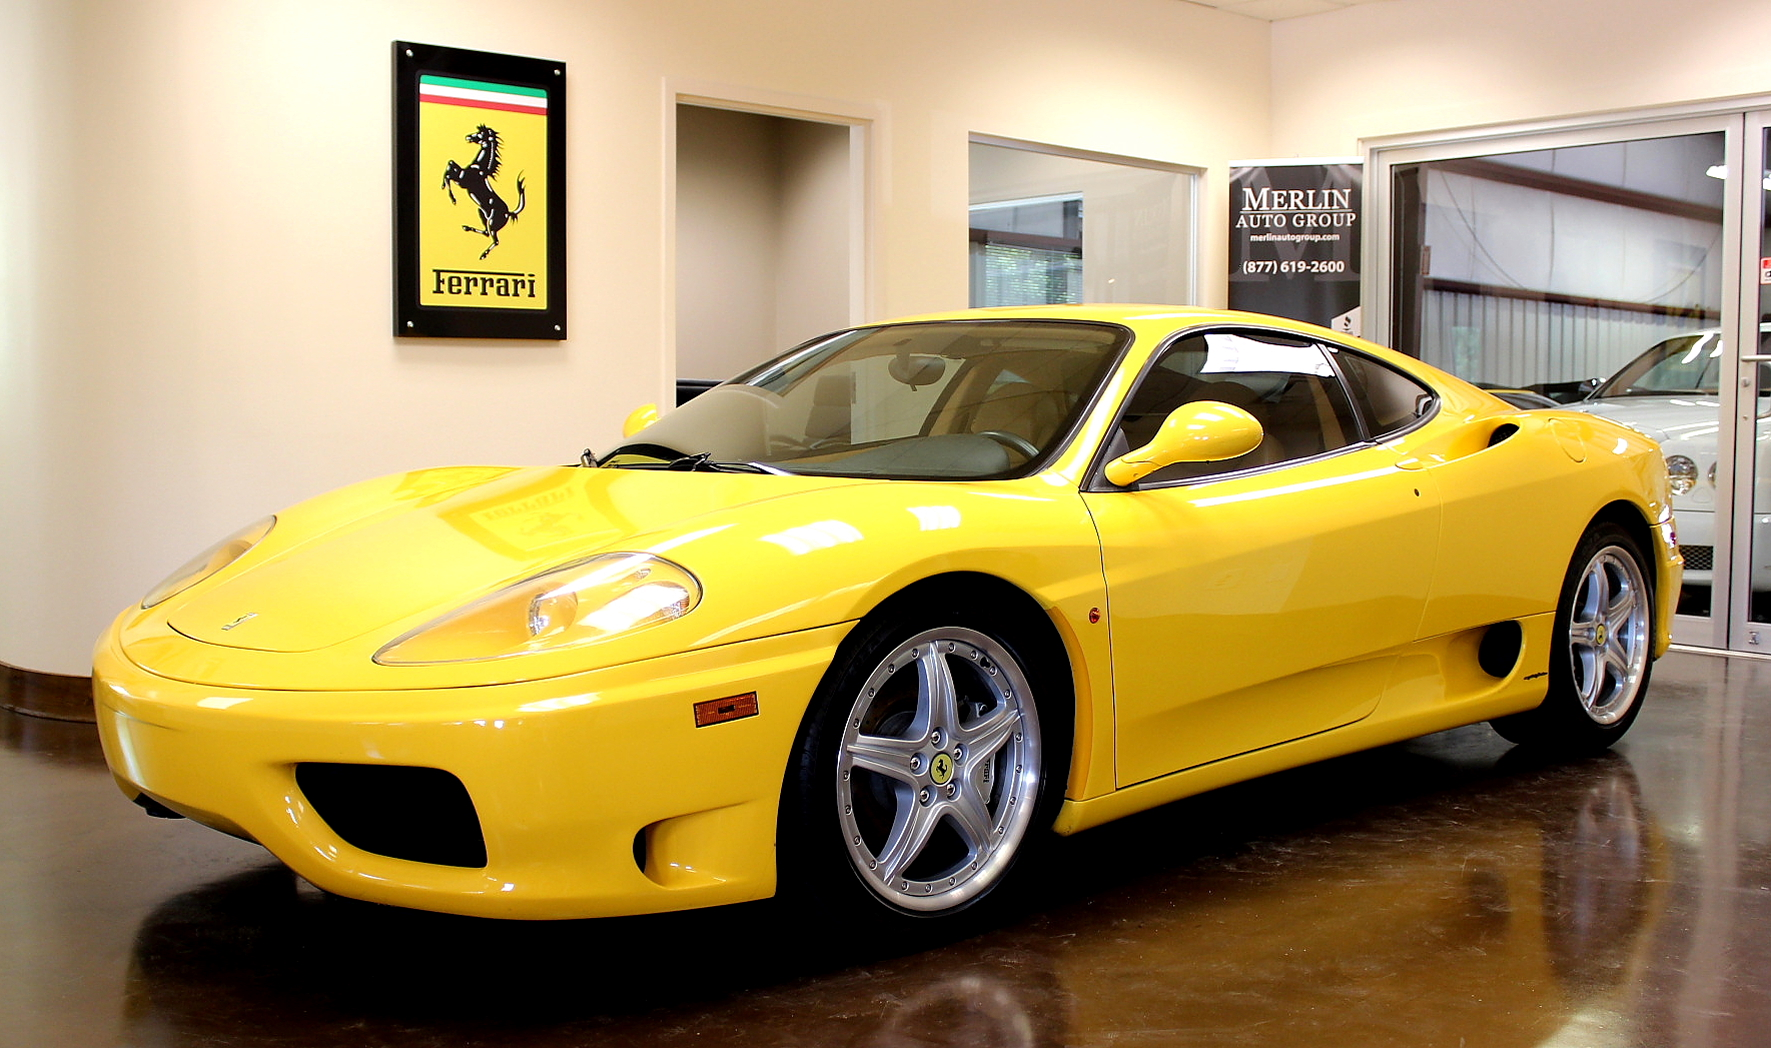 What Changed From The 360 To The F430 Merlin Auto Group